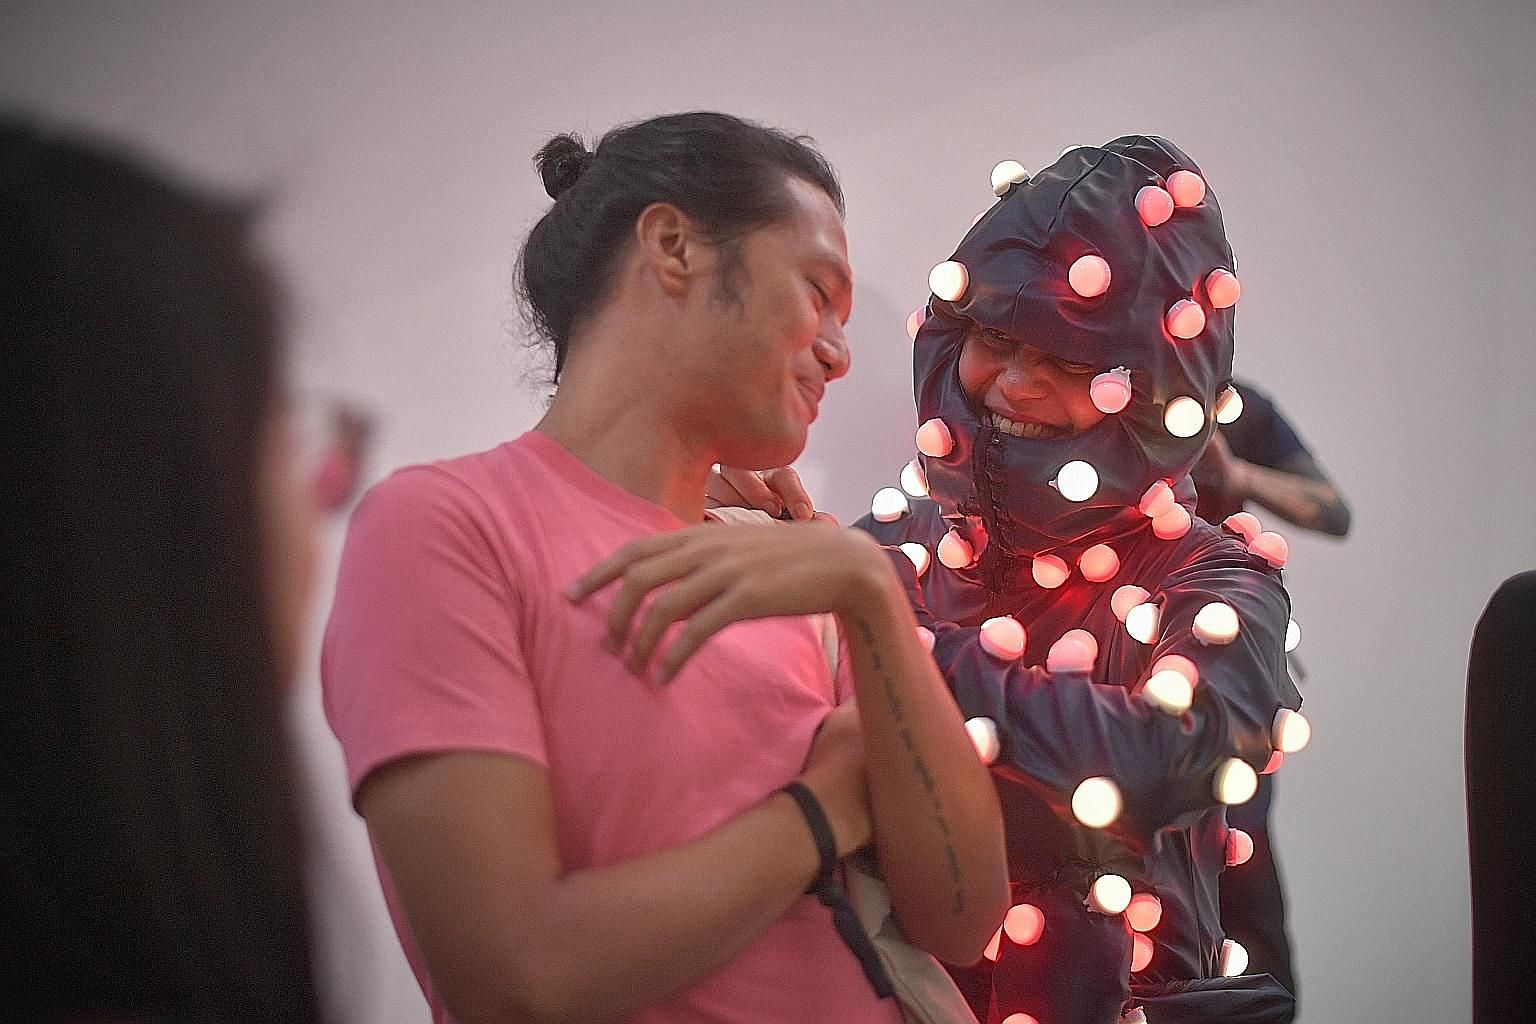 Filipino artist Lilibeth Cuenca Rasmussen presented an interactive performance, Octopada, at the S.E.A. Focus showcase in Gillman Barracks, now in its second edition as part of Singapore Art Week 2020.